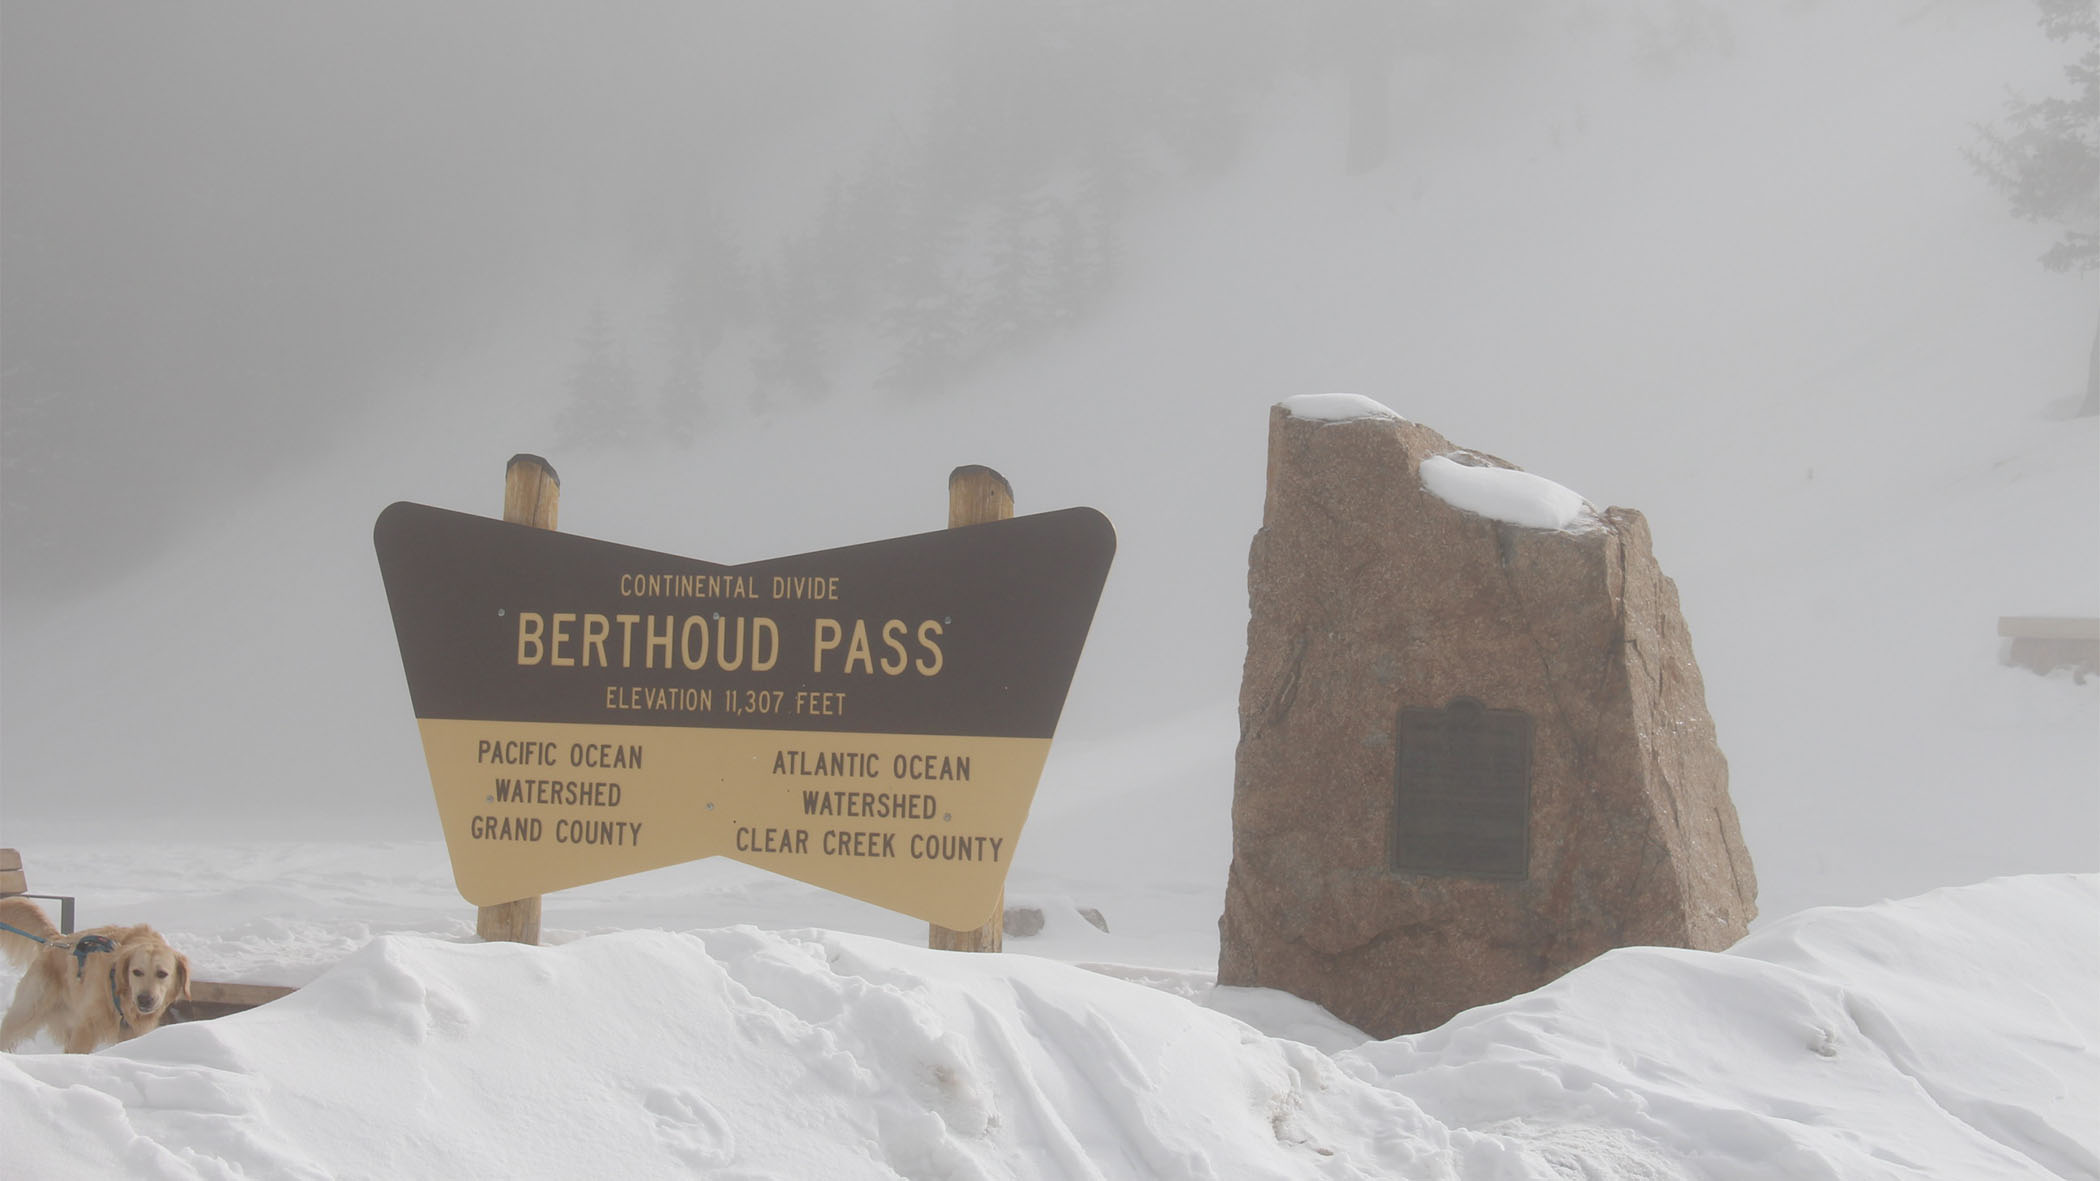 Snow accumulates at Berthoud Pass near the Colorado River headwaters in January 2018. The 2017-2018 winter was one of the driest on record for the southern Rocky Mountains.